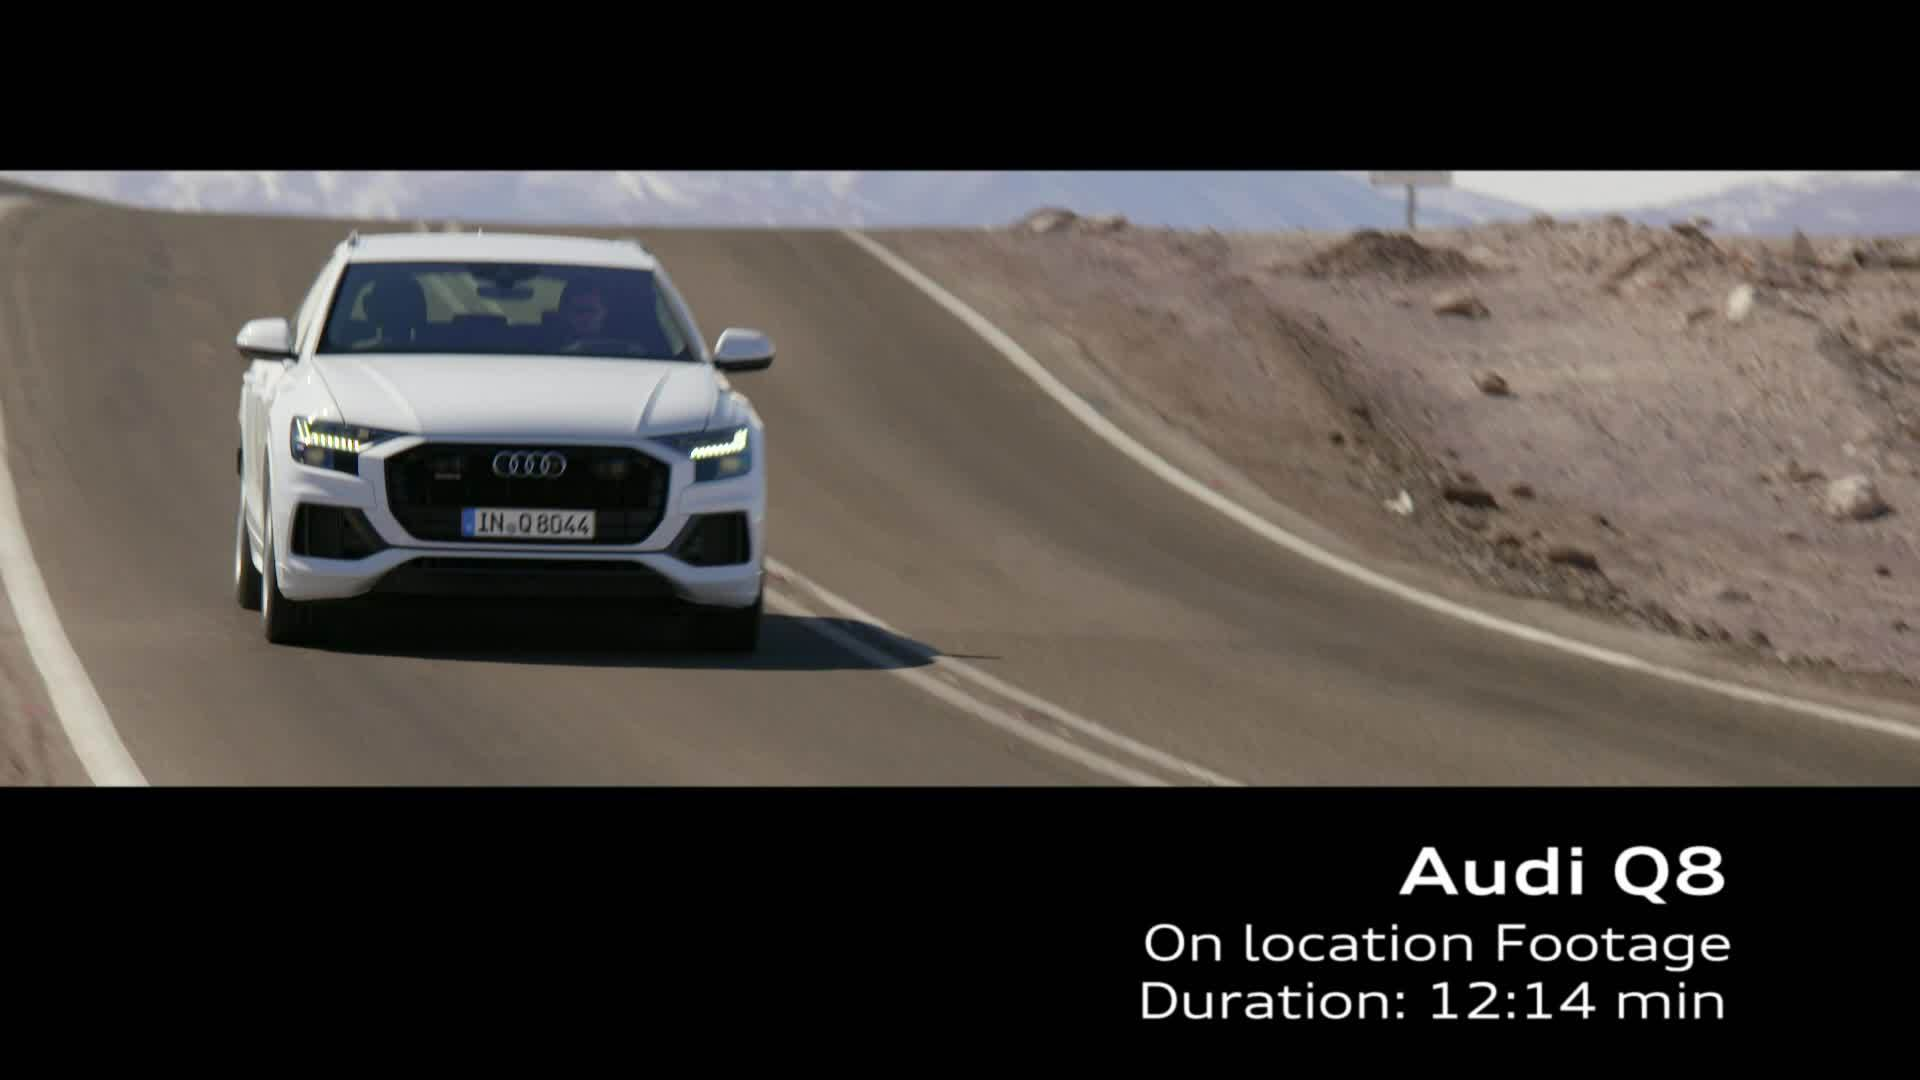 Audi Q8 Footage Chile Glacier white